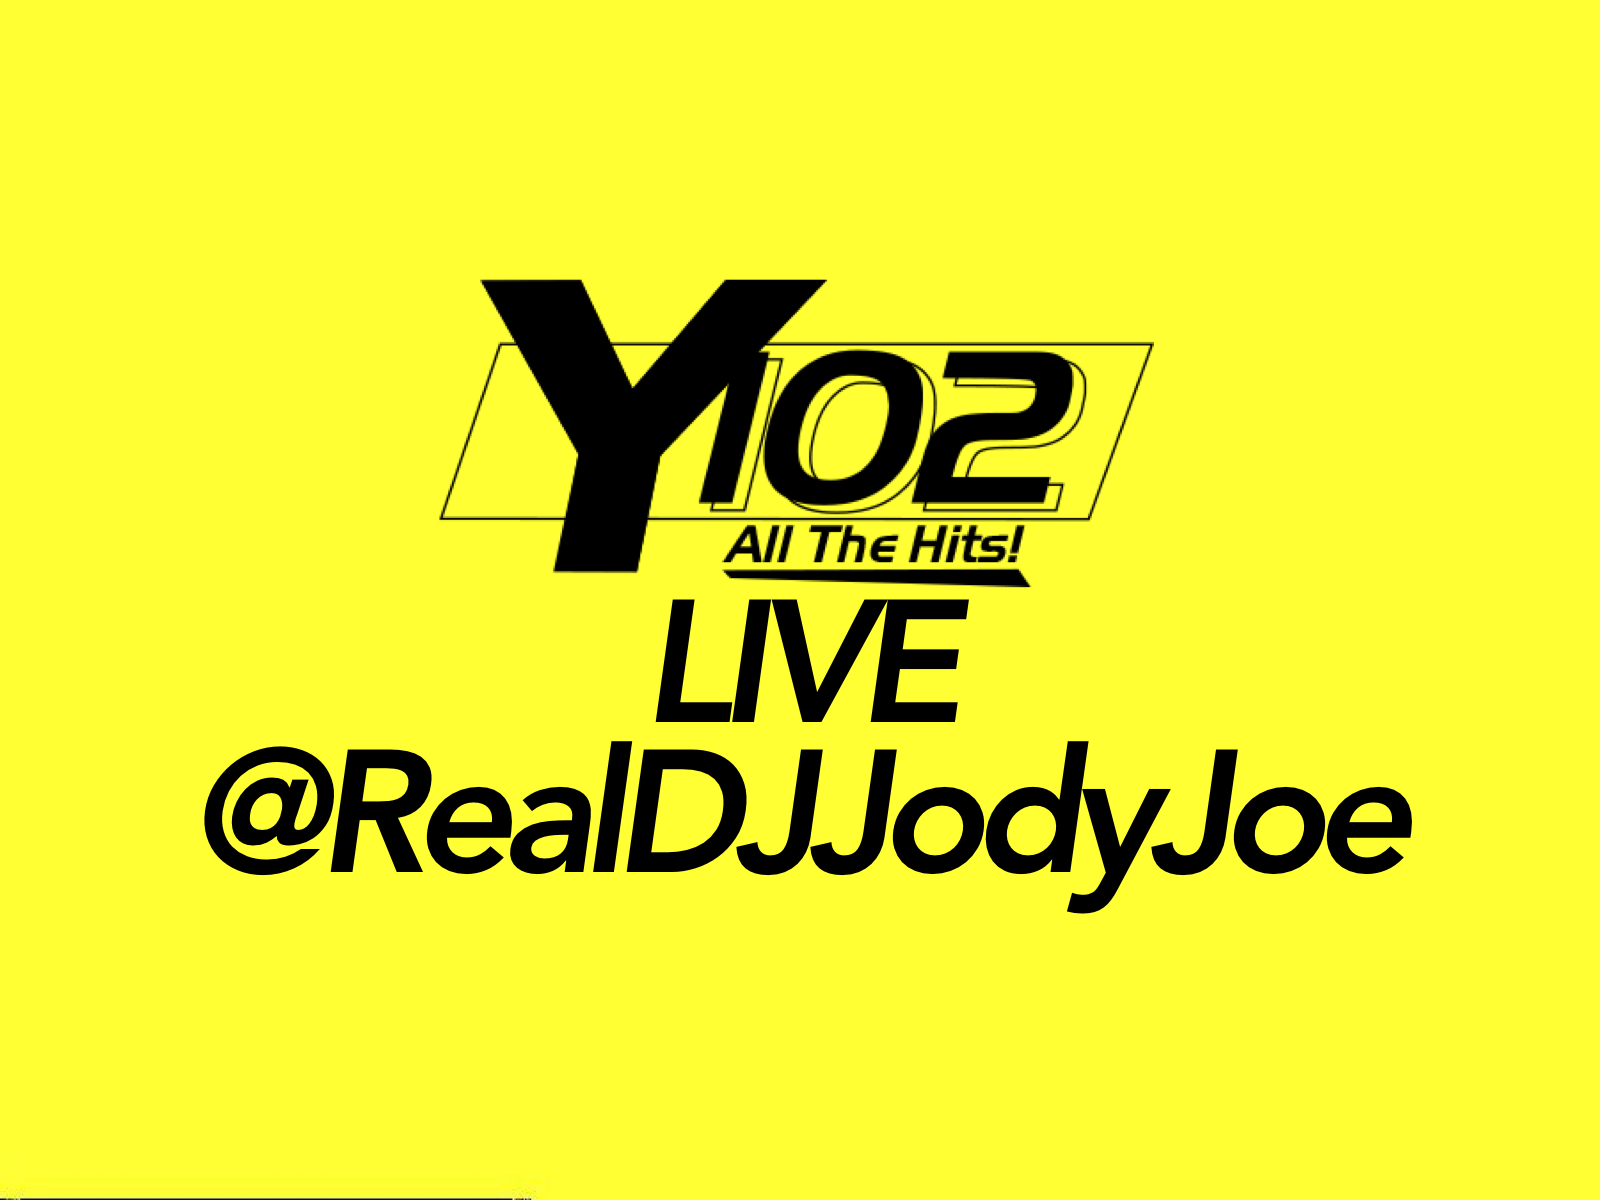 Y-102 Live – All the Hits in the mix!